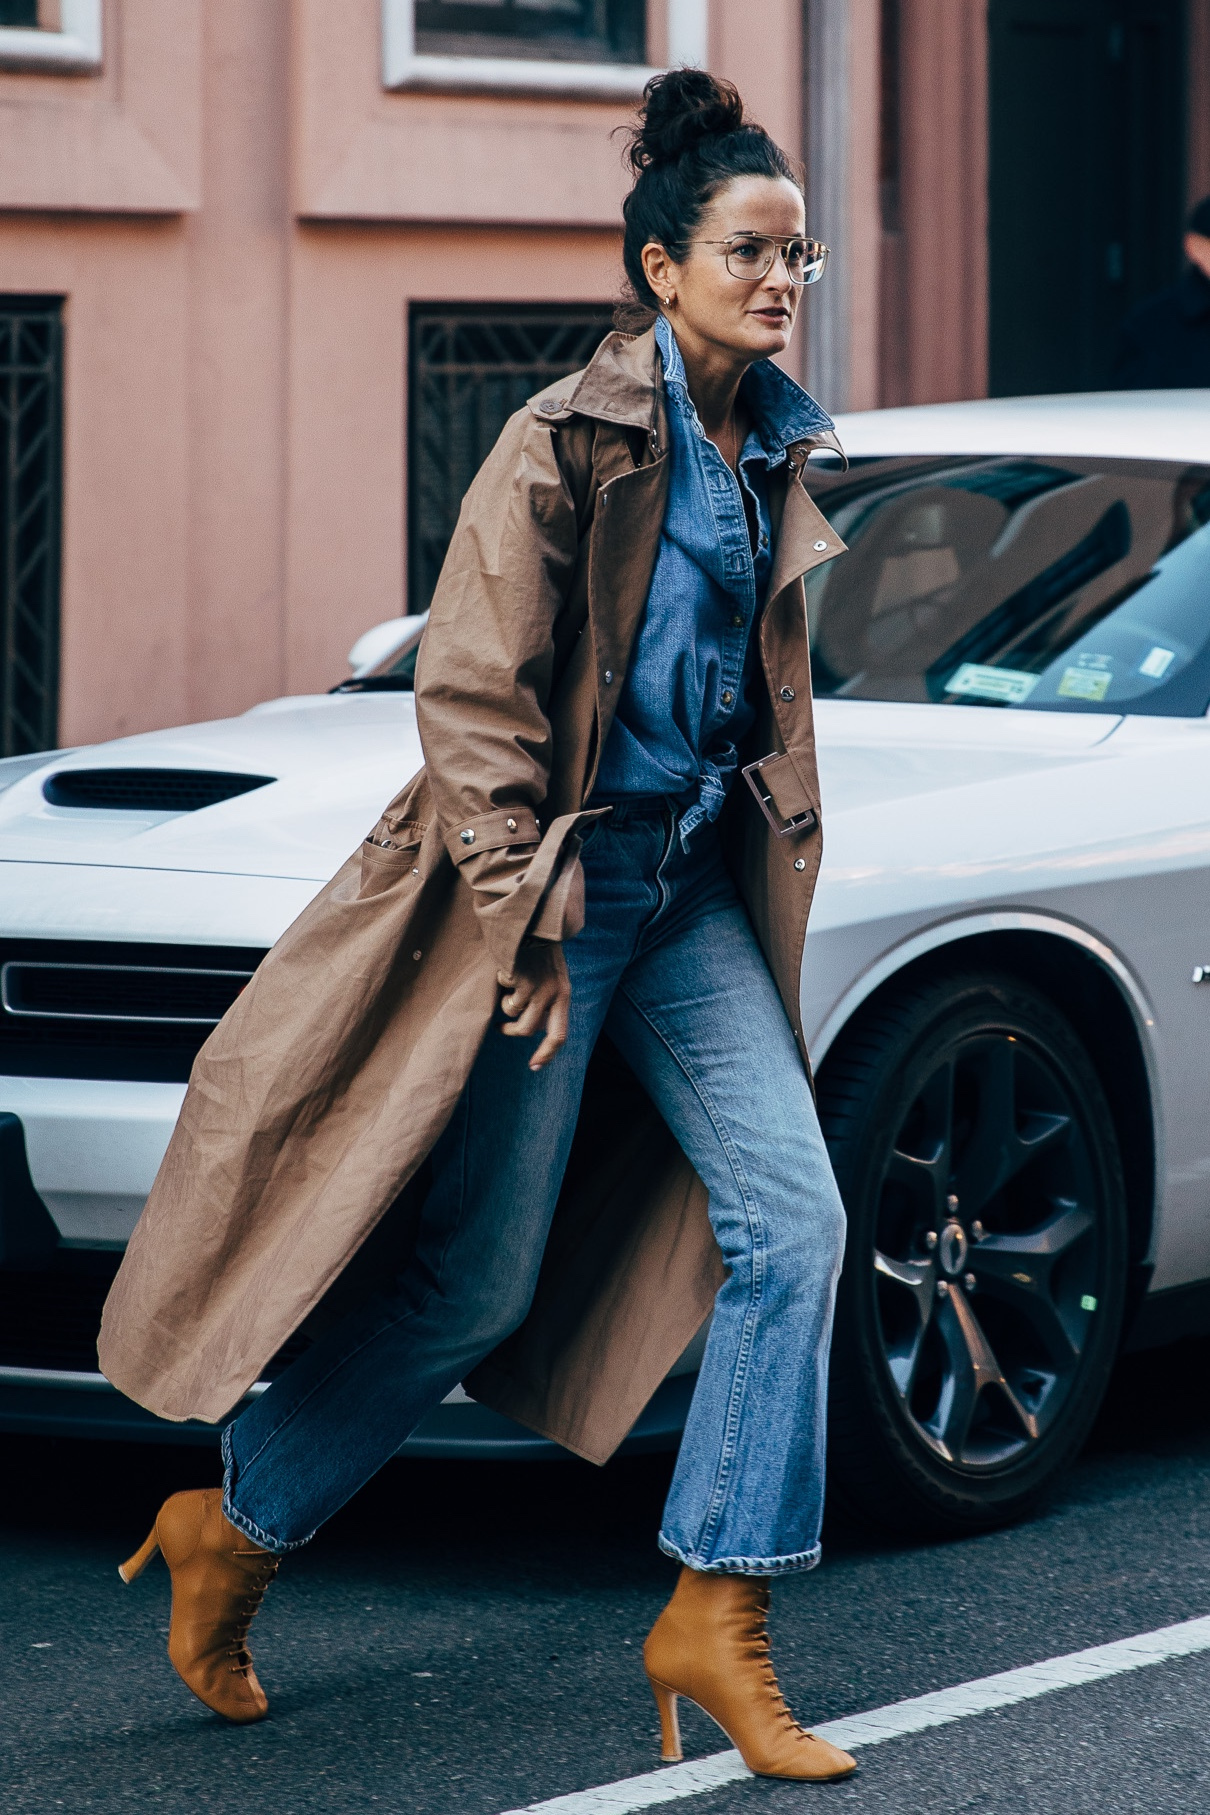 Lucy Chadwick  wearing this double denim outfit during New York Fashion Week earlier this year.